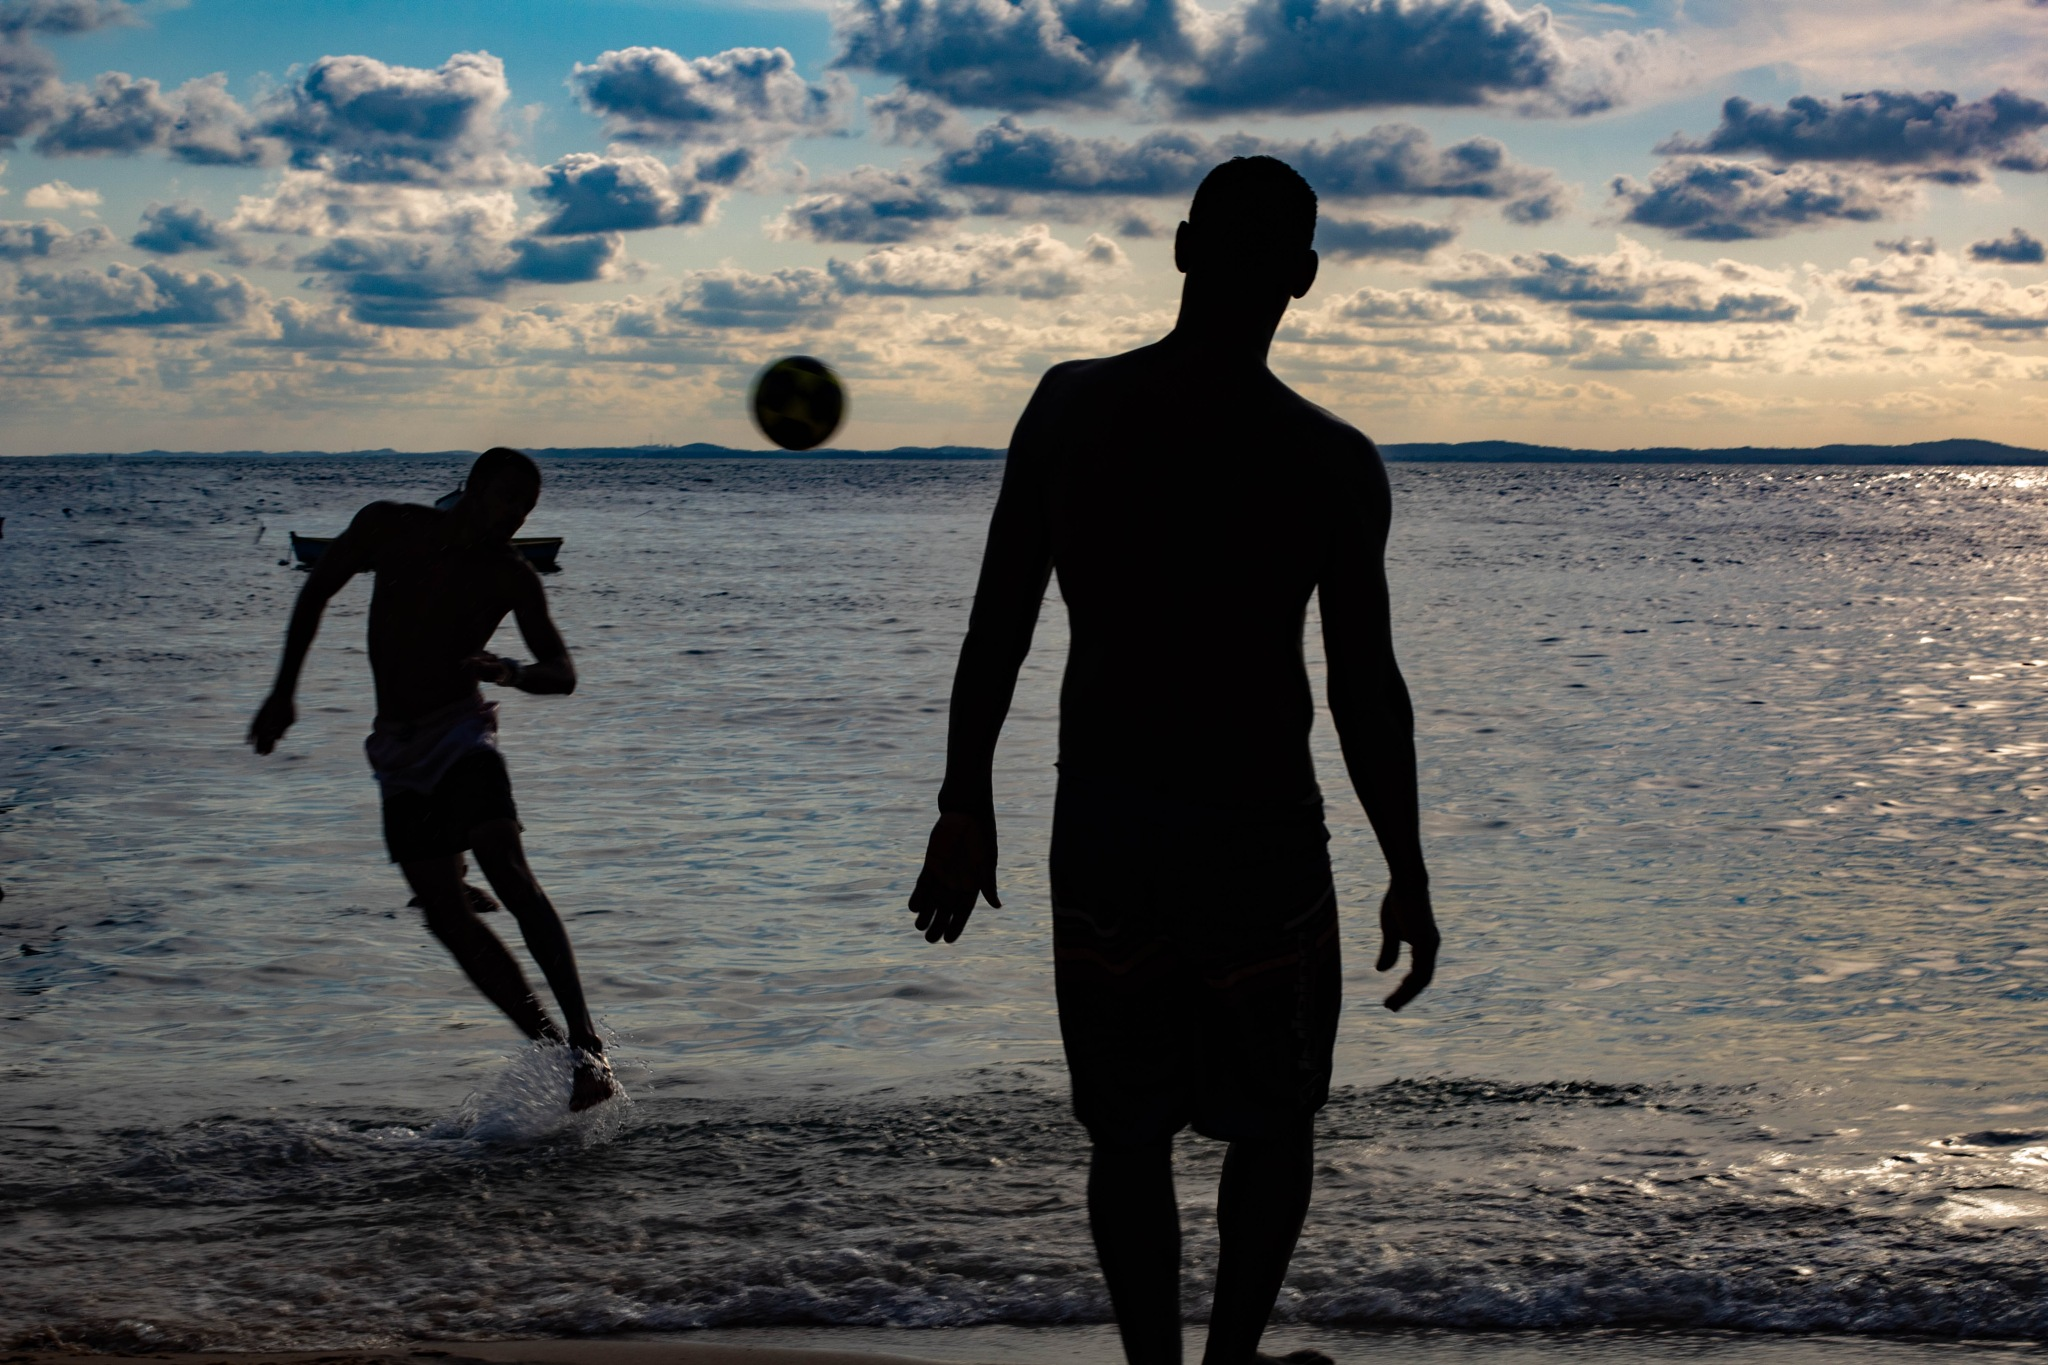 Soccer playing at the beach by Olívia Oseas Matar